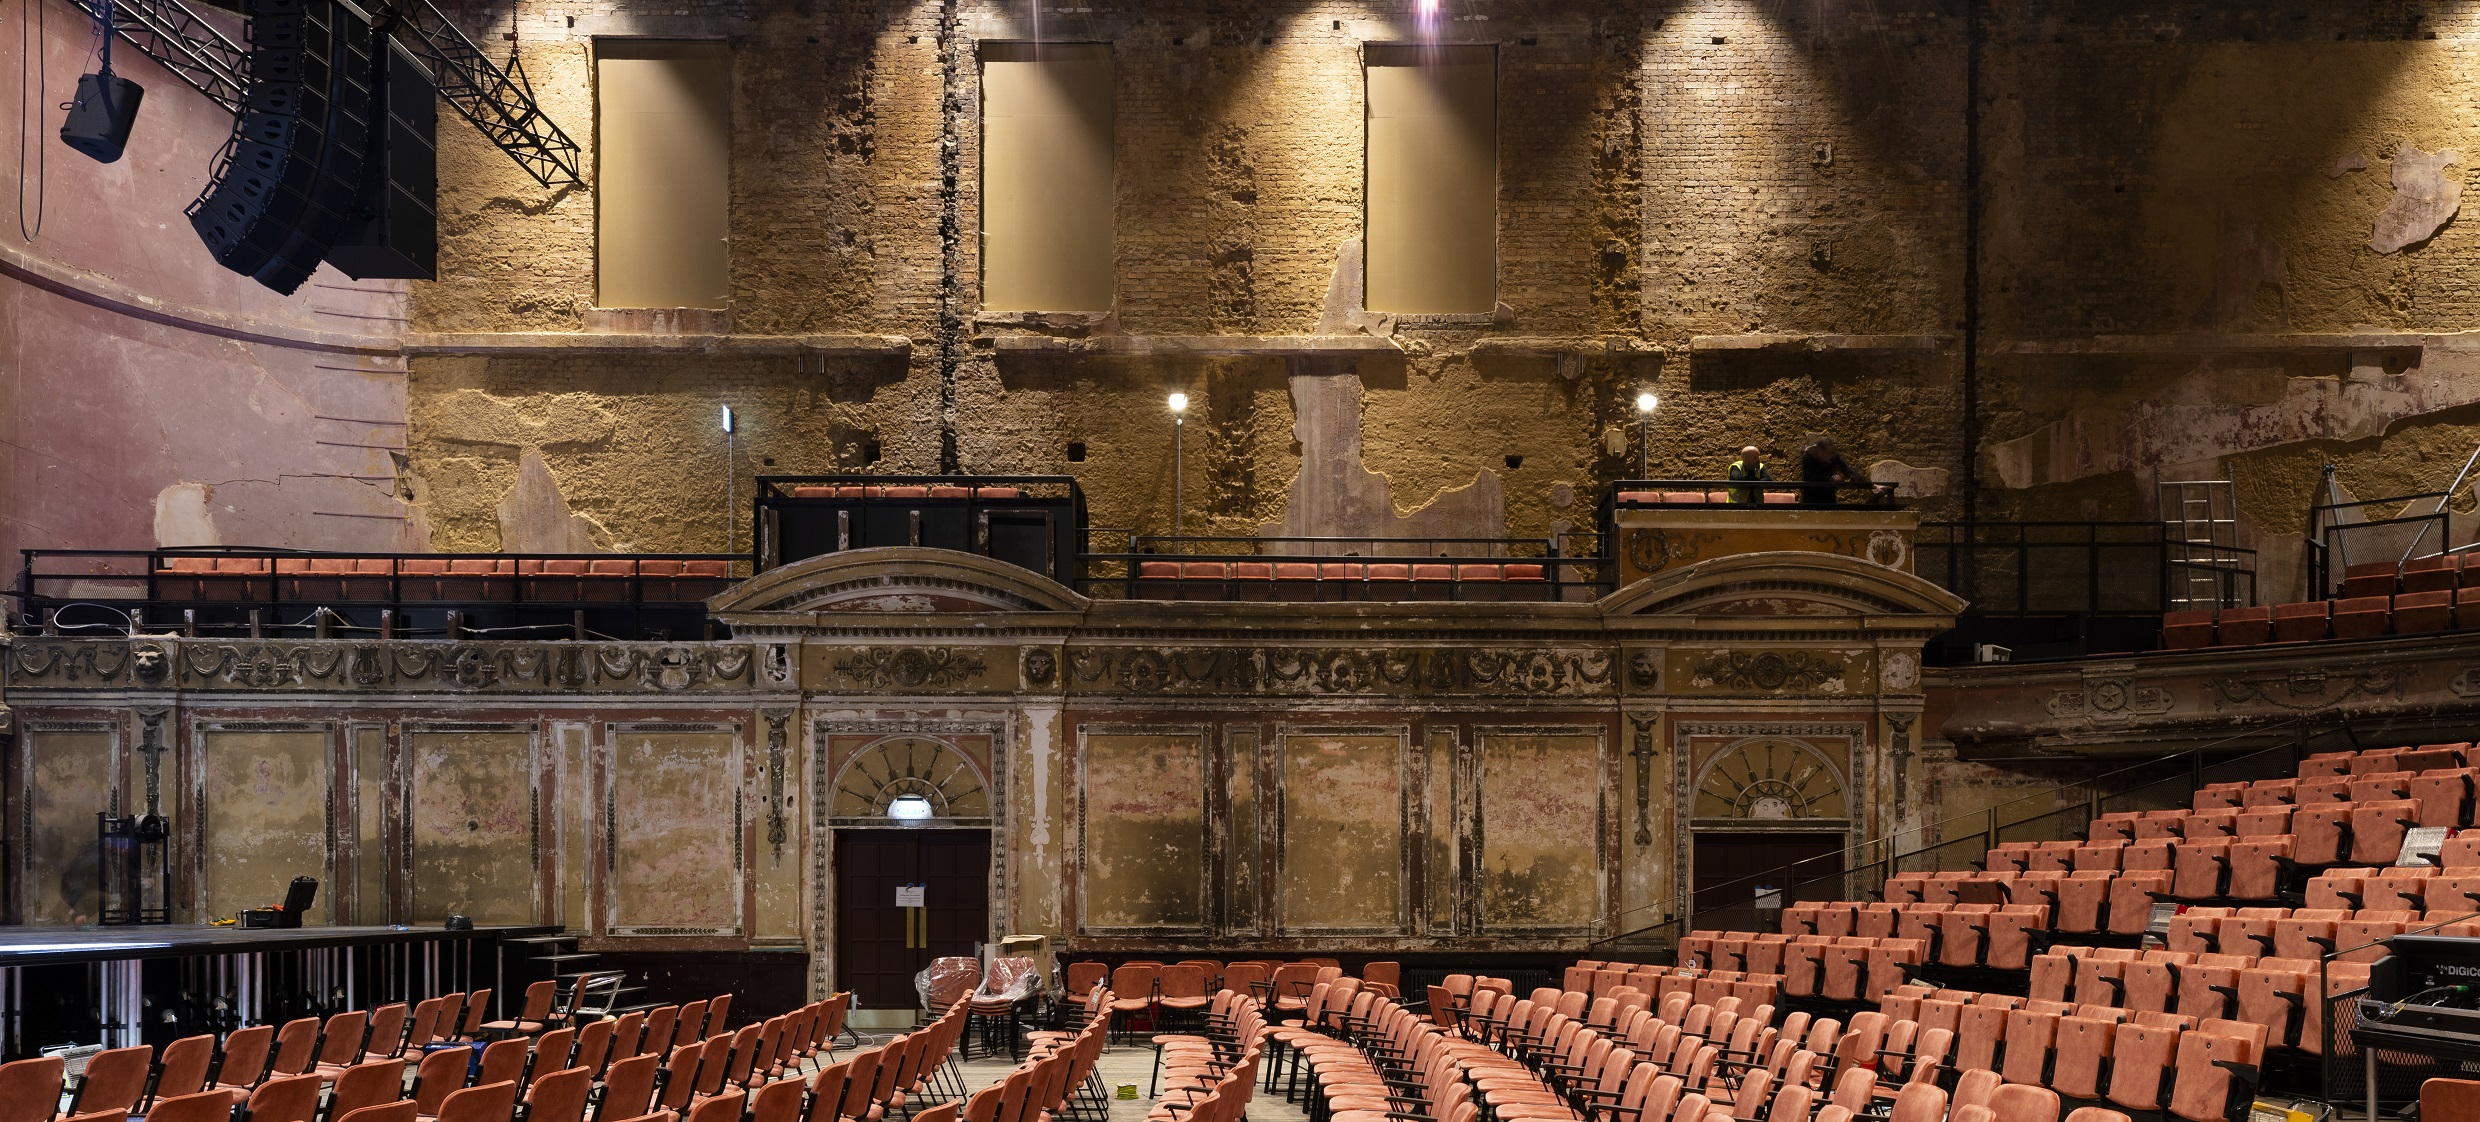 Ally Pally theatre reopens after 80 years